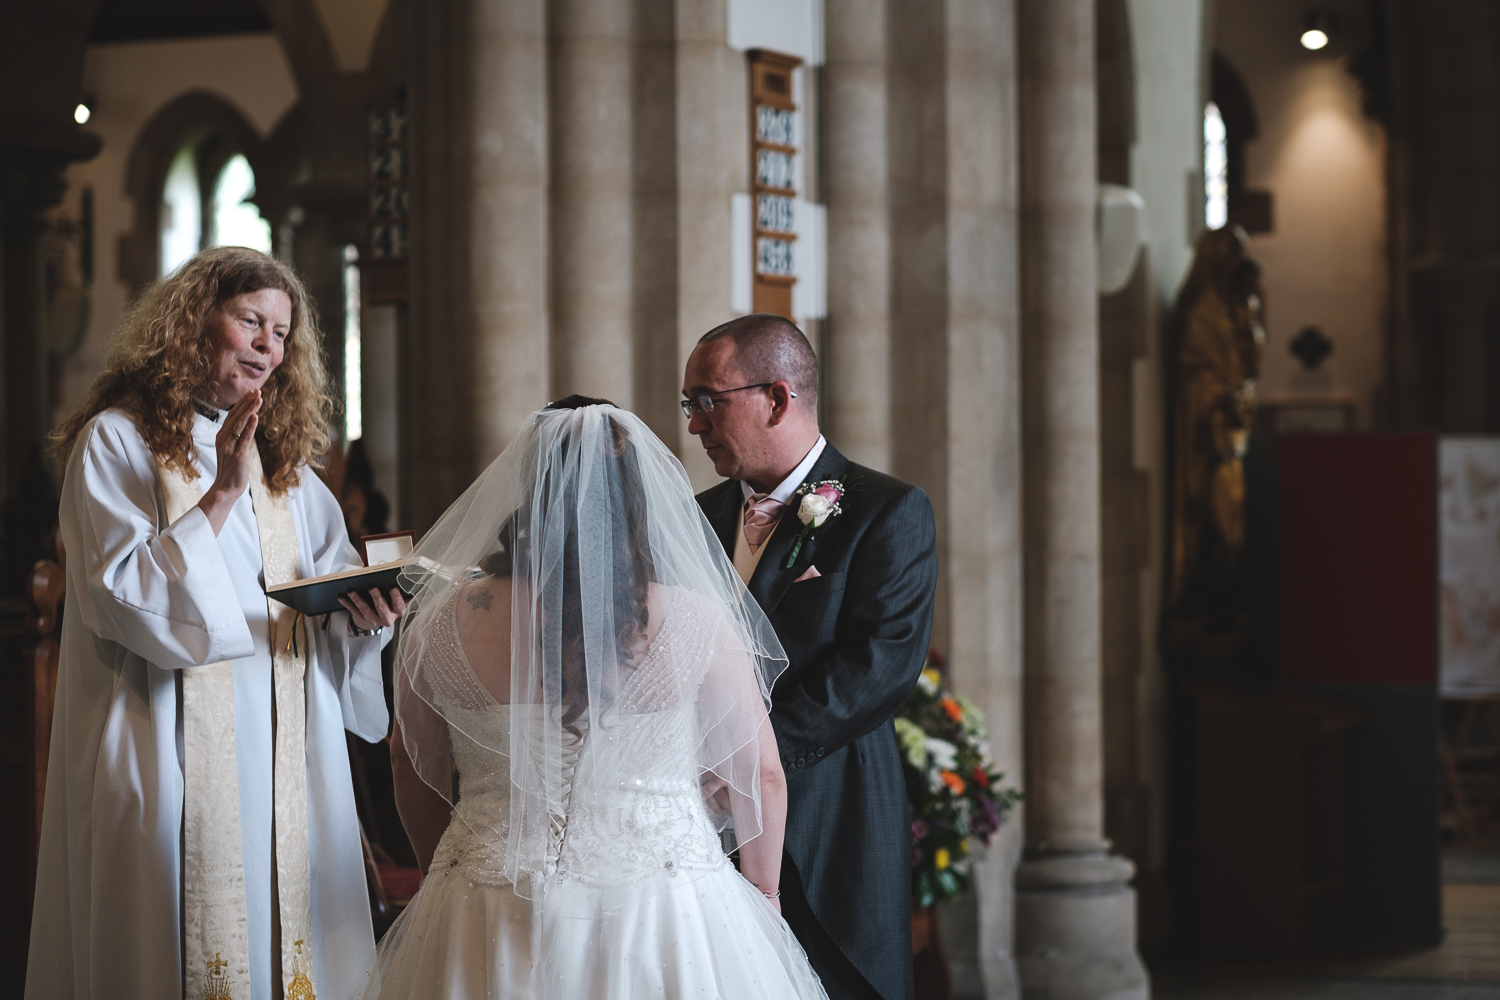 st michael and all angels wedding photography-40.jpg